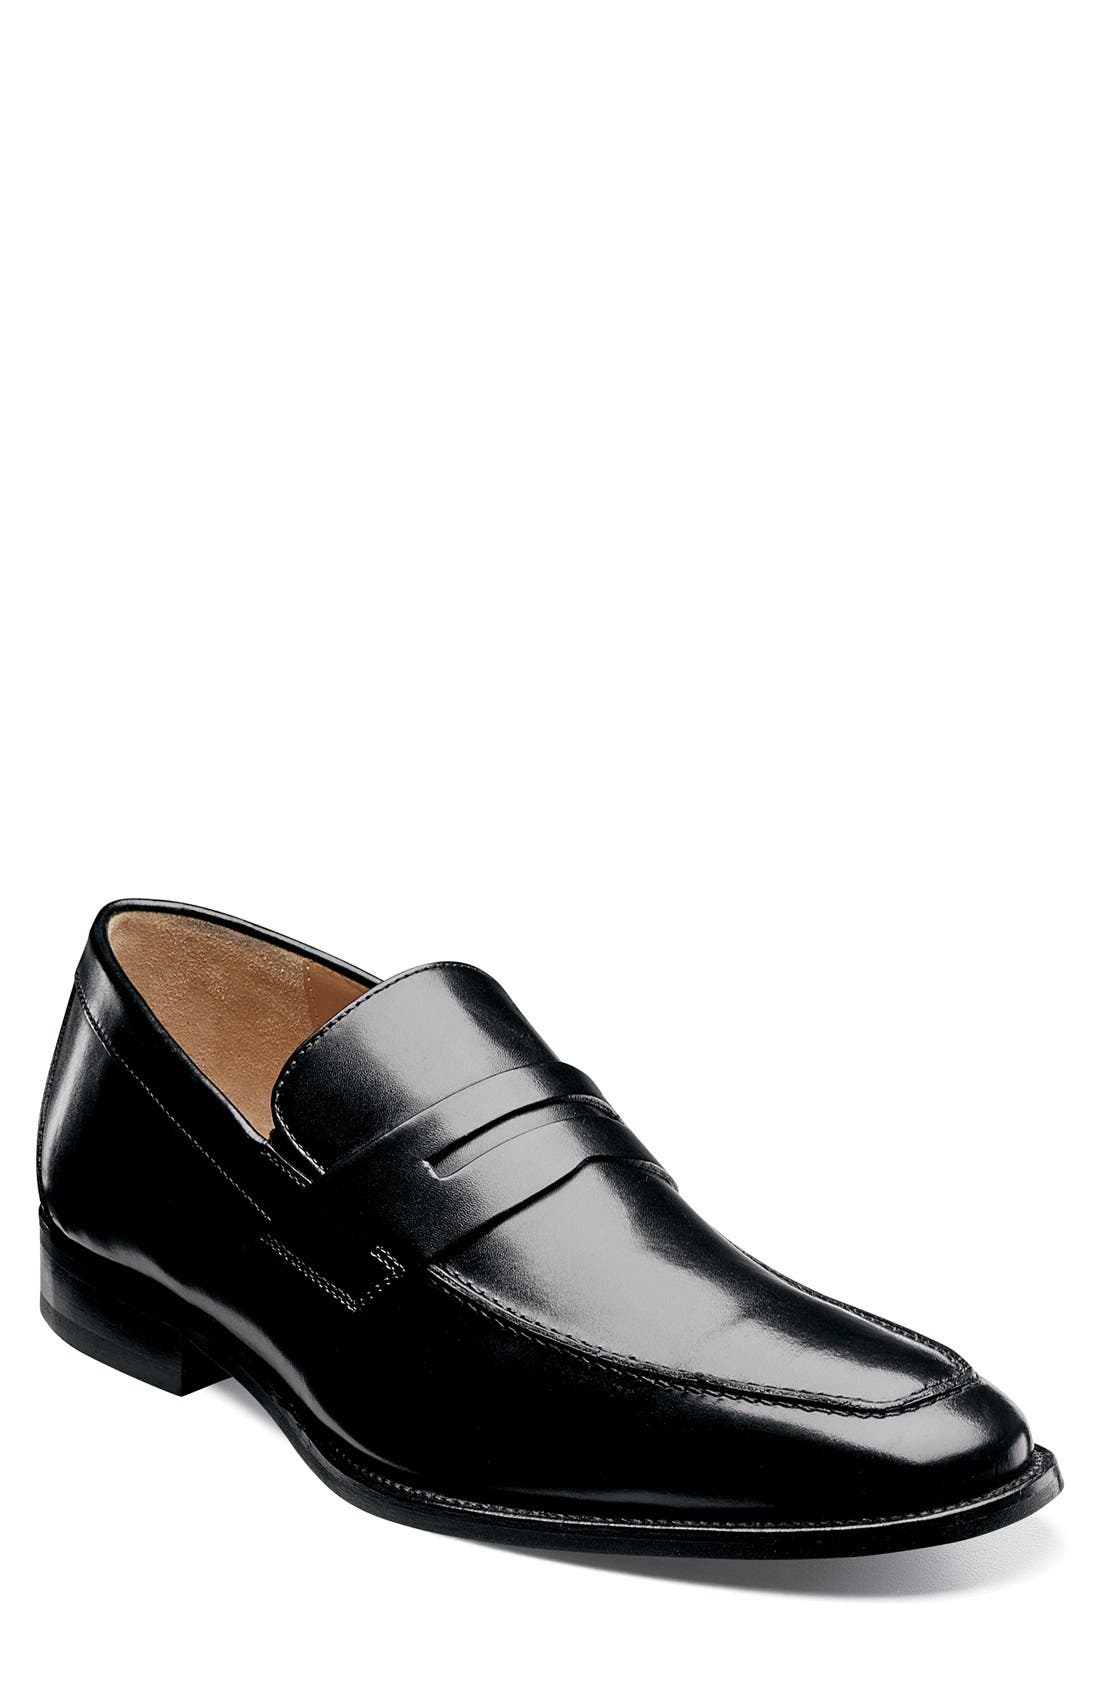 'Sabato' Penny Loafer,                         Main,                         color,